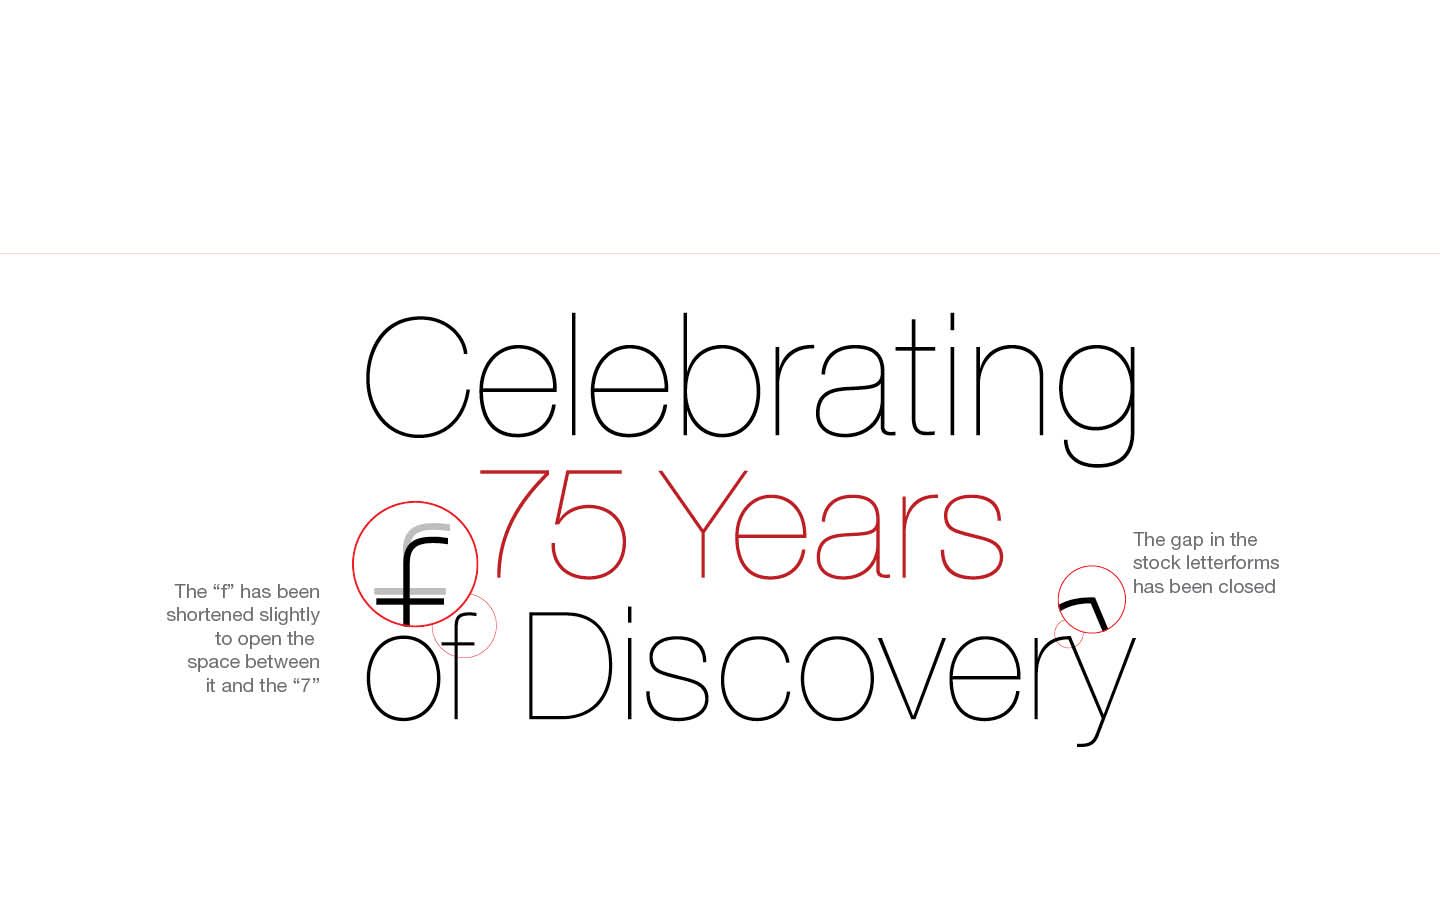 Avery Dennison 75th anniversary stacked tagline typography- Celebrating 75 Years of Discovery